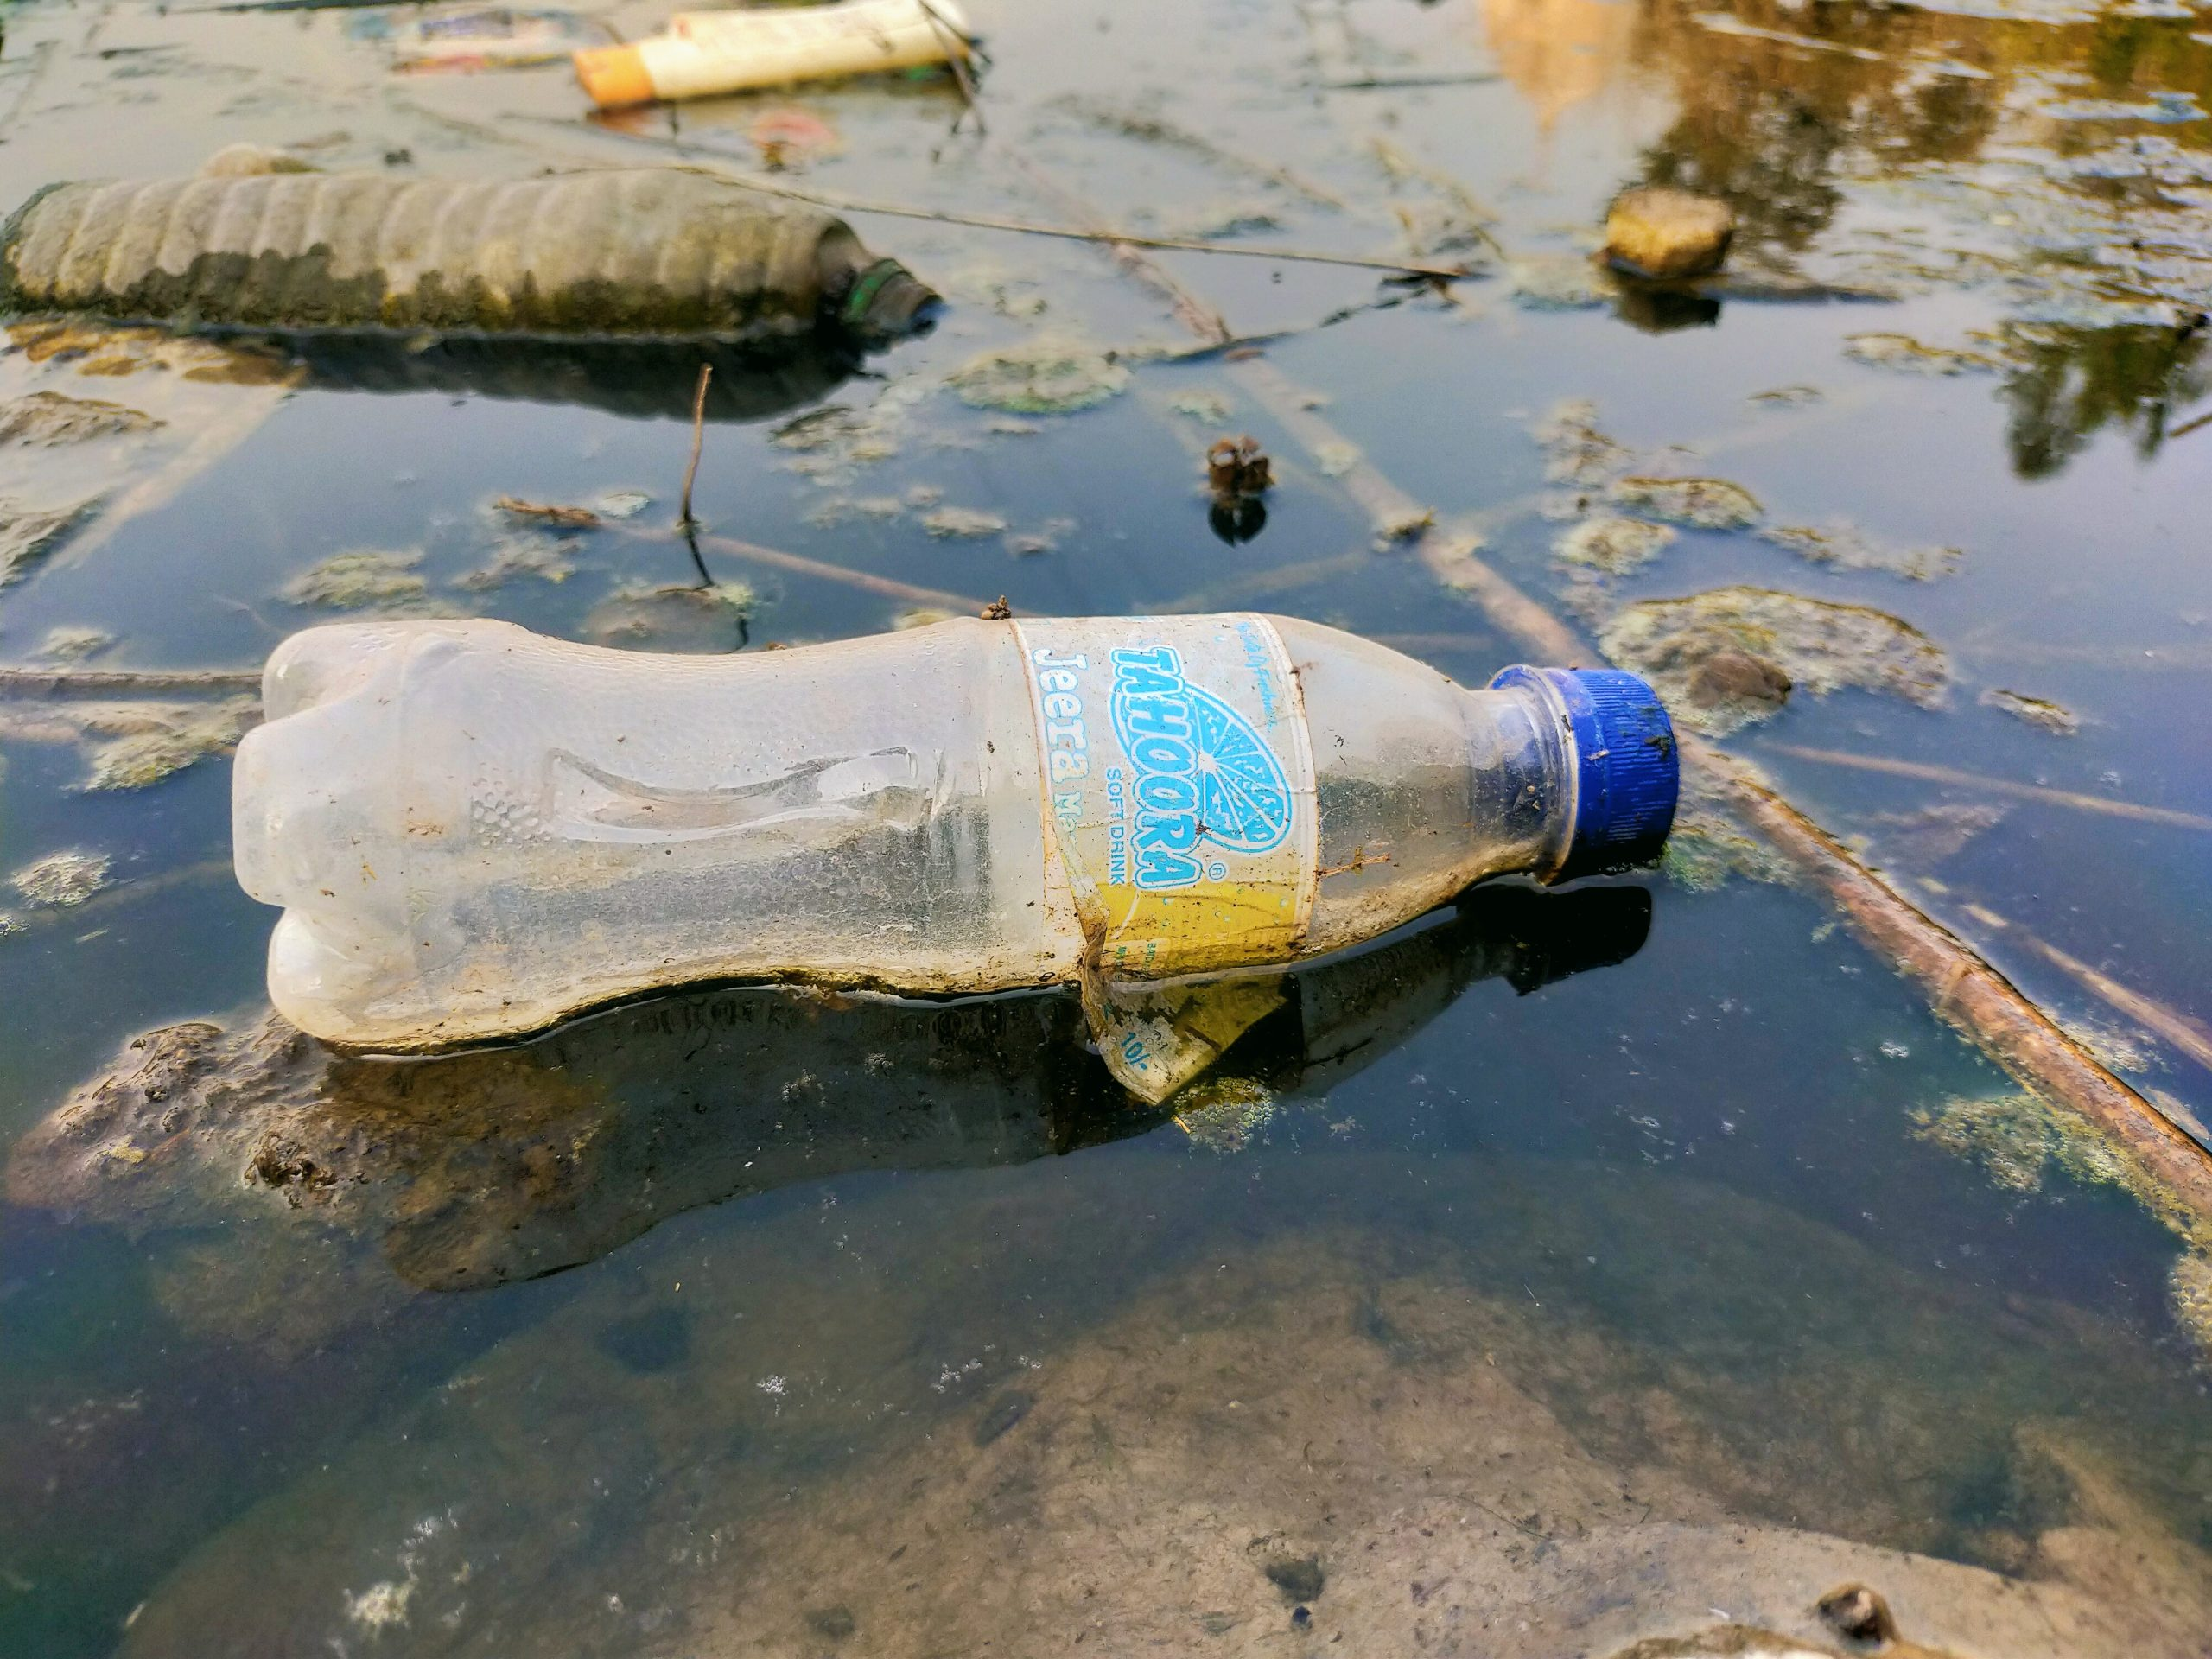 Plastic bottles dumped in a water resource